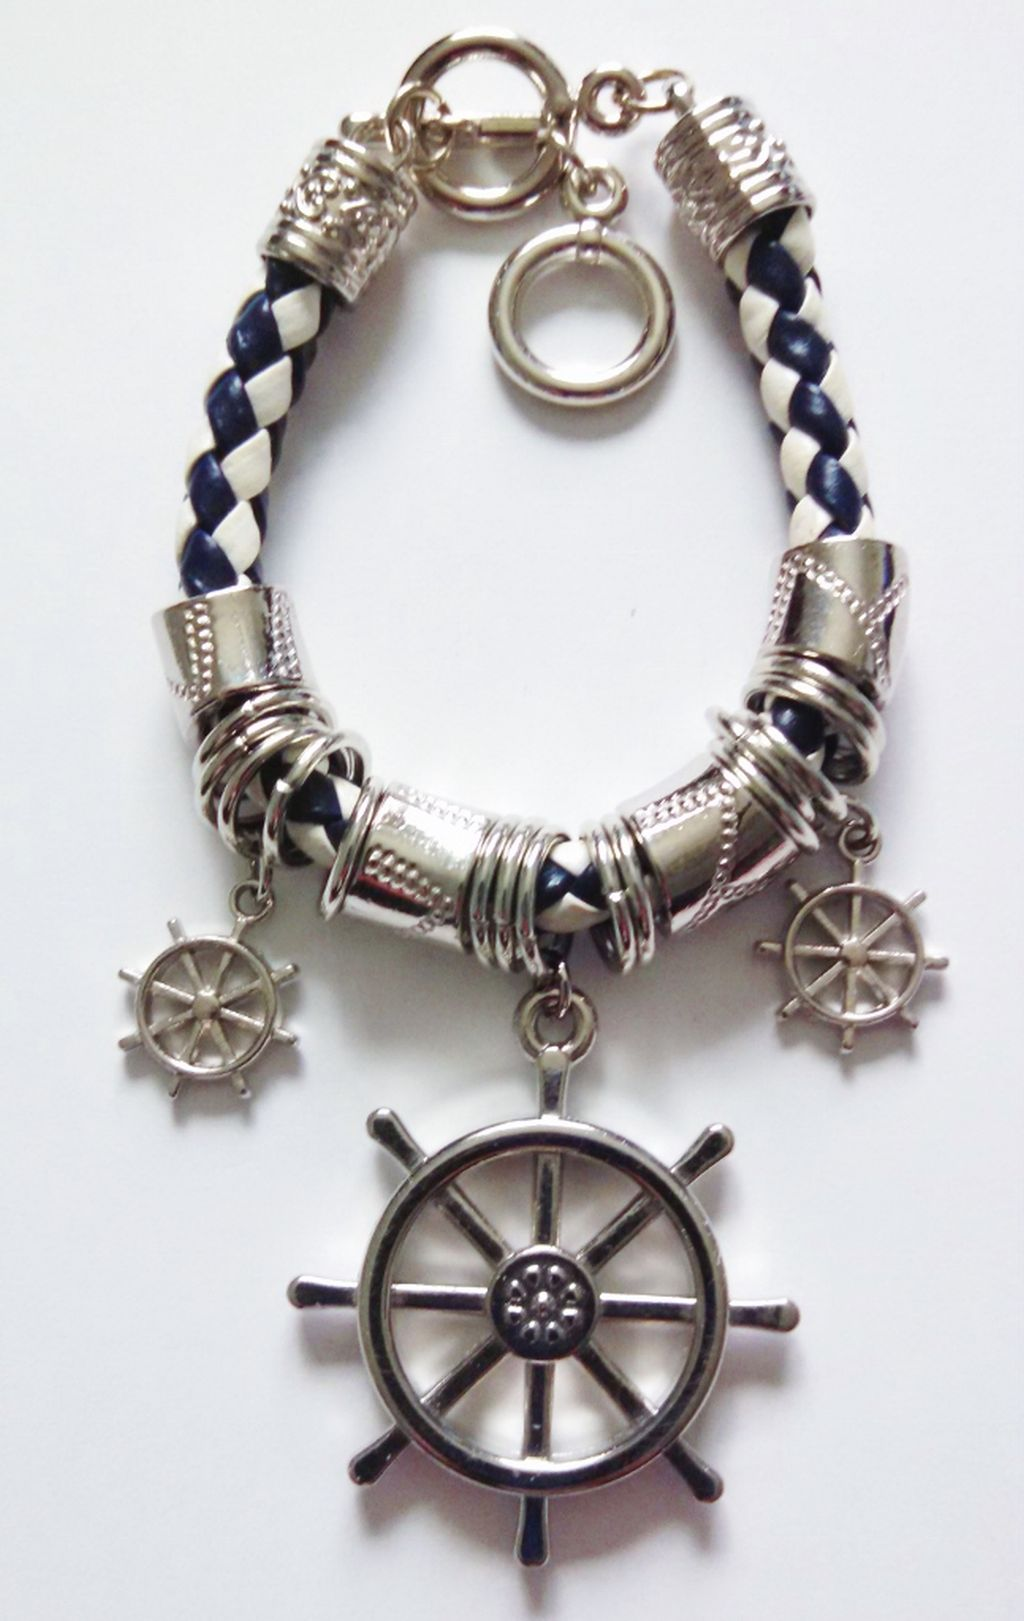 Silver Naval Ship Wheel Sailing Charm Bracelet, Nautical Jewelry Blue/White